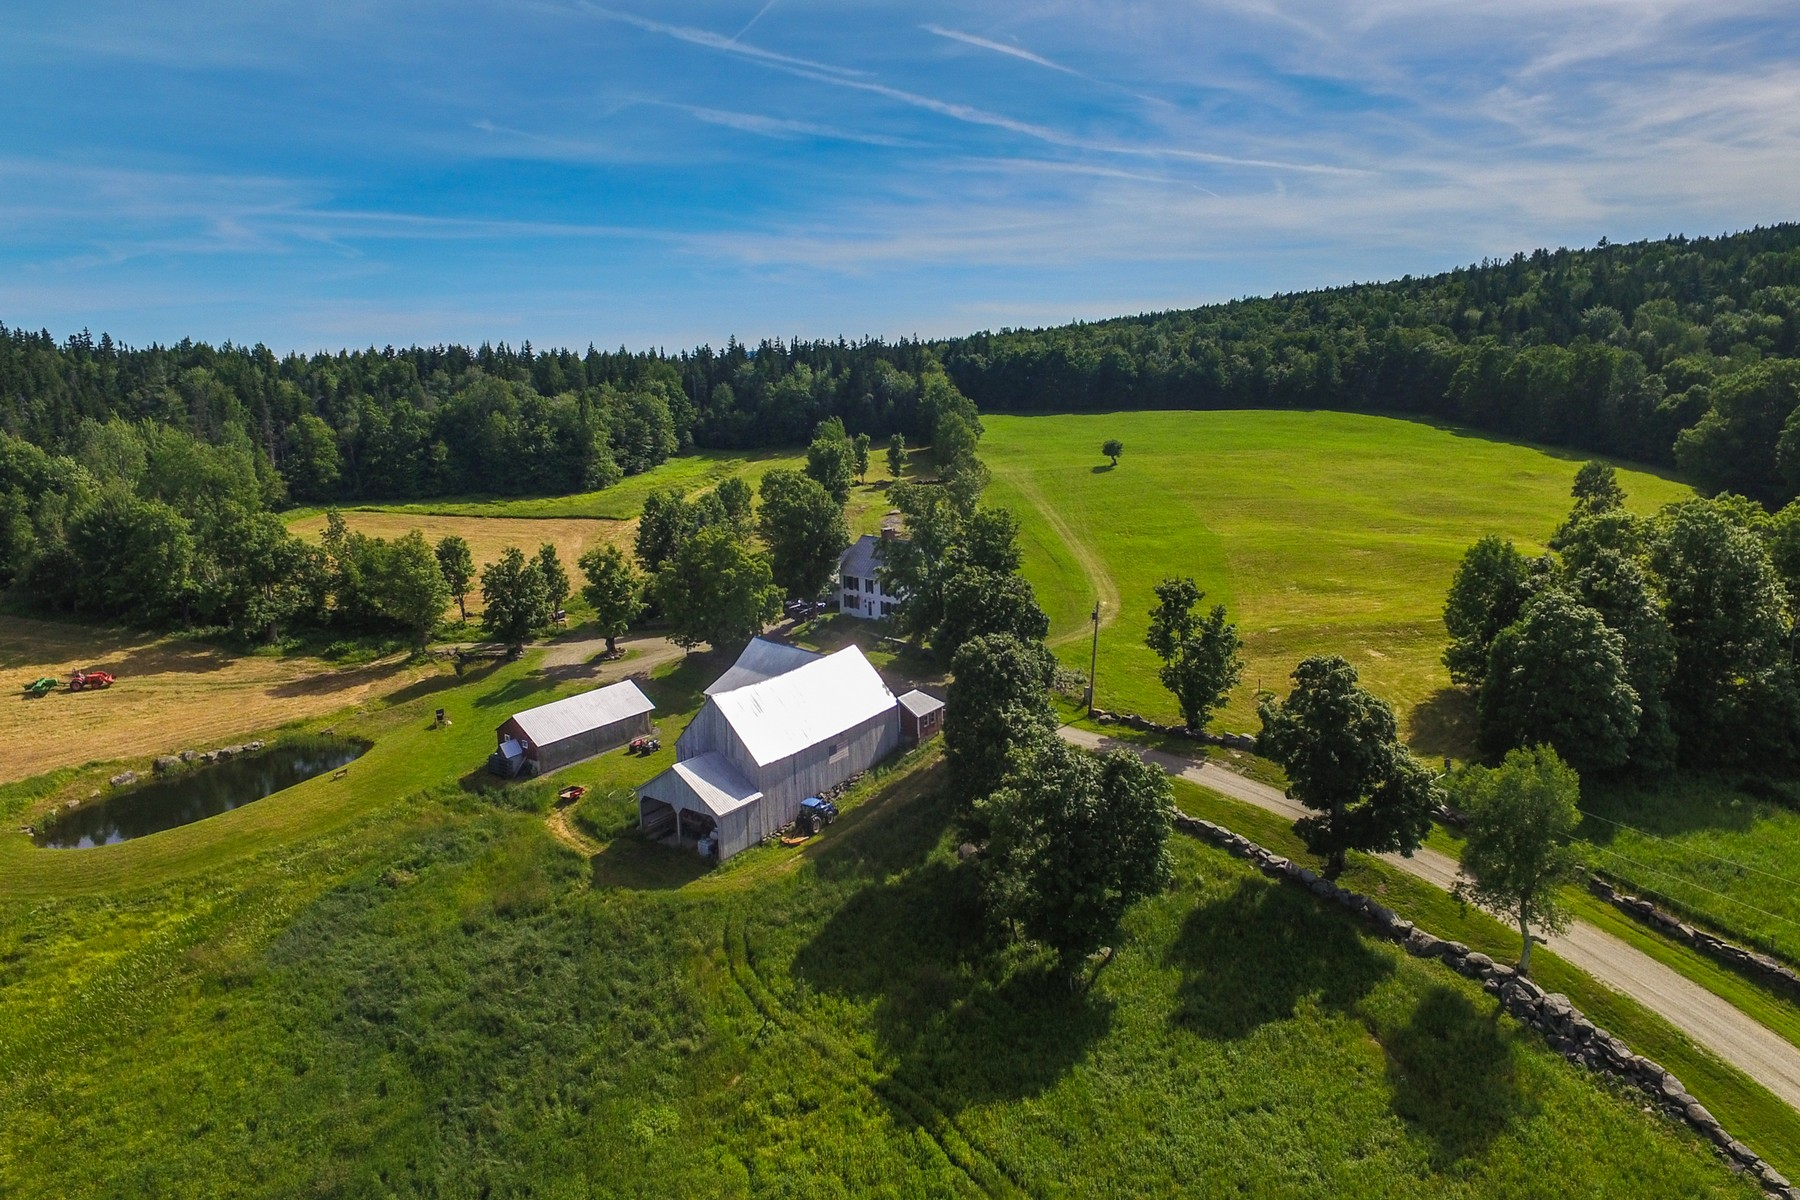 Single Family Home for Sale at Exceptional Property with 197 Acres 89 Wellman Rd Wilmington, Vermont 05363 United States